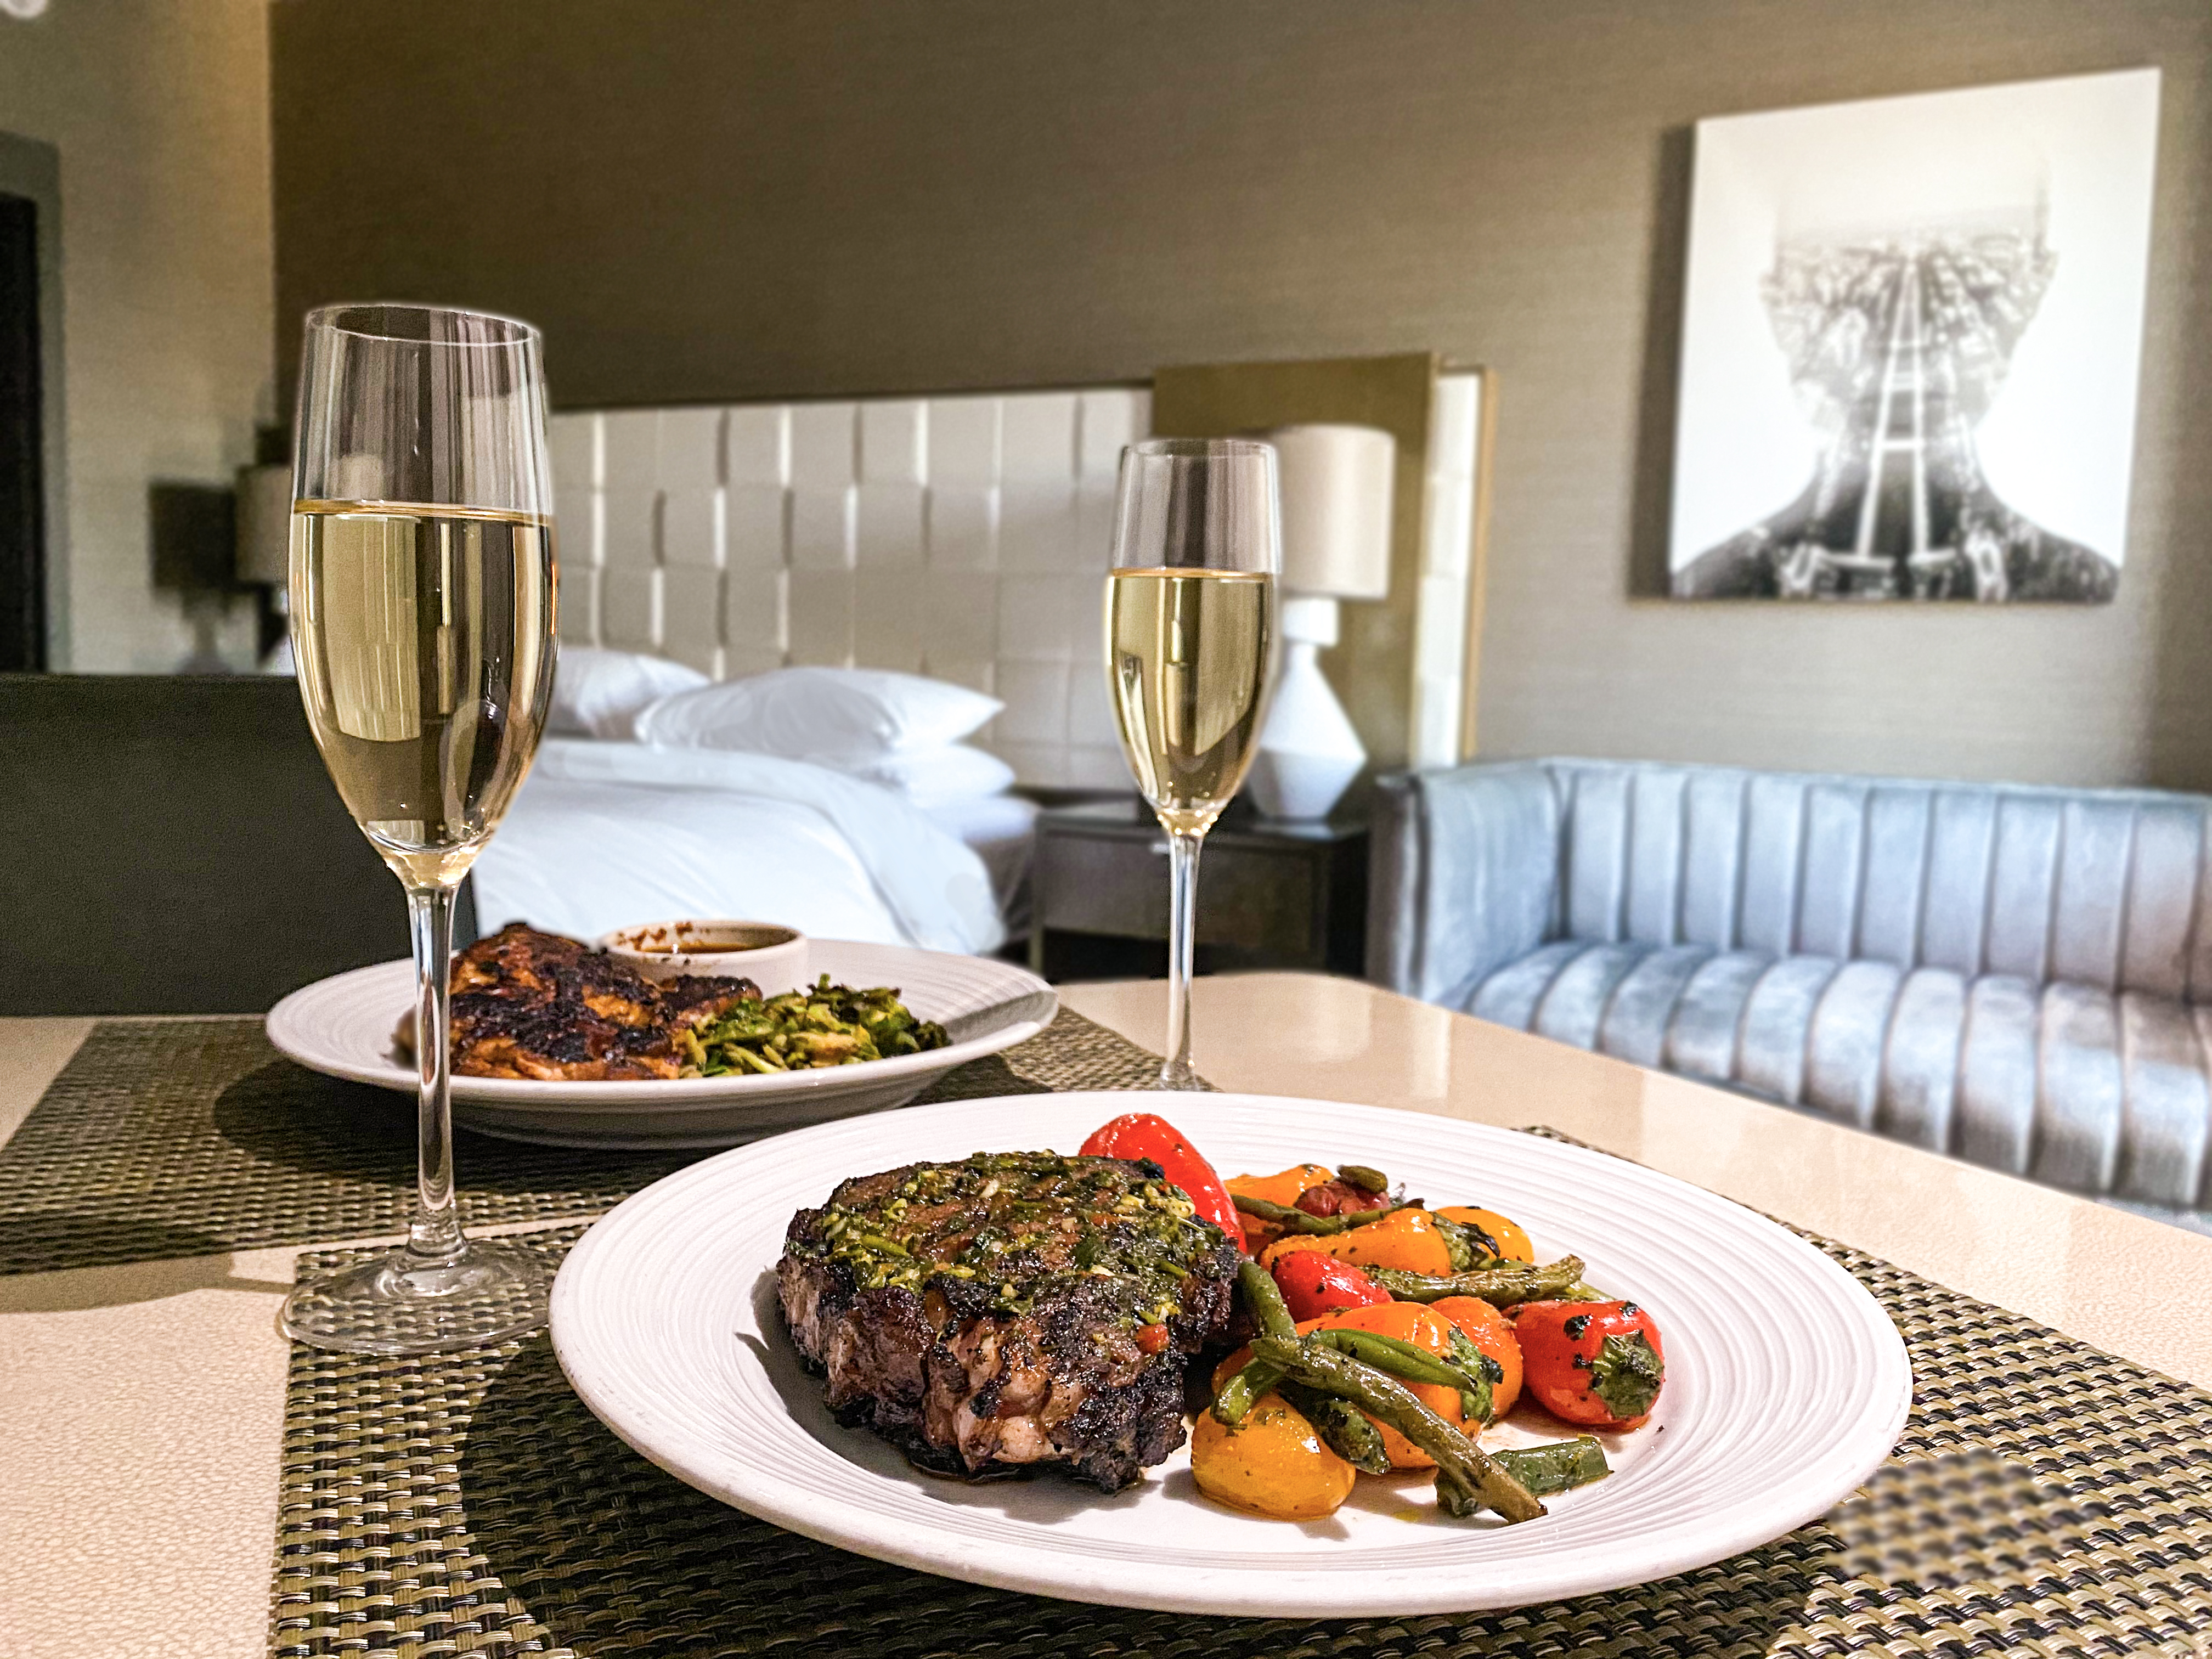 Table with champagne glasses filled up and two plates with vegetables and meat. All inside a hotel room.